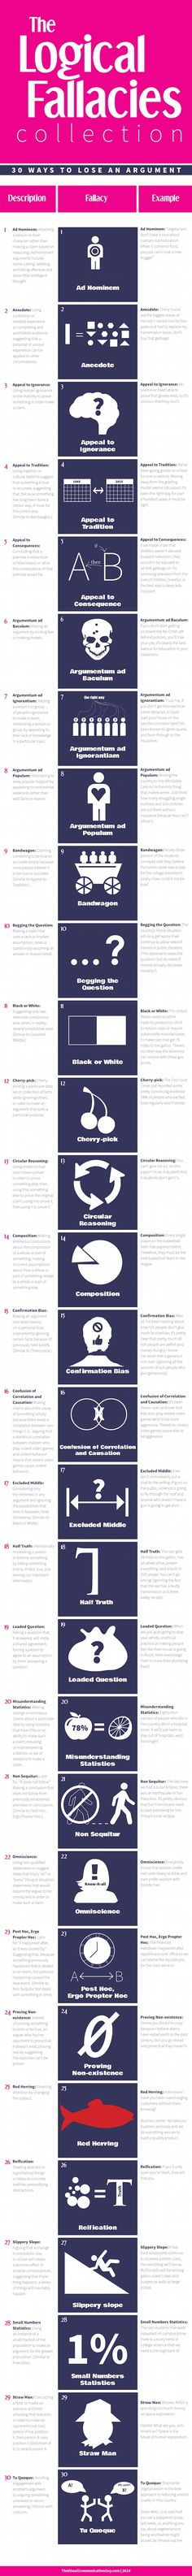 30 Ways to Lose An Argument [Infographic], via @HubSpot